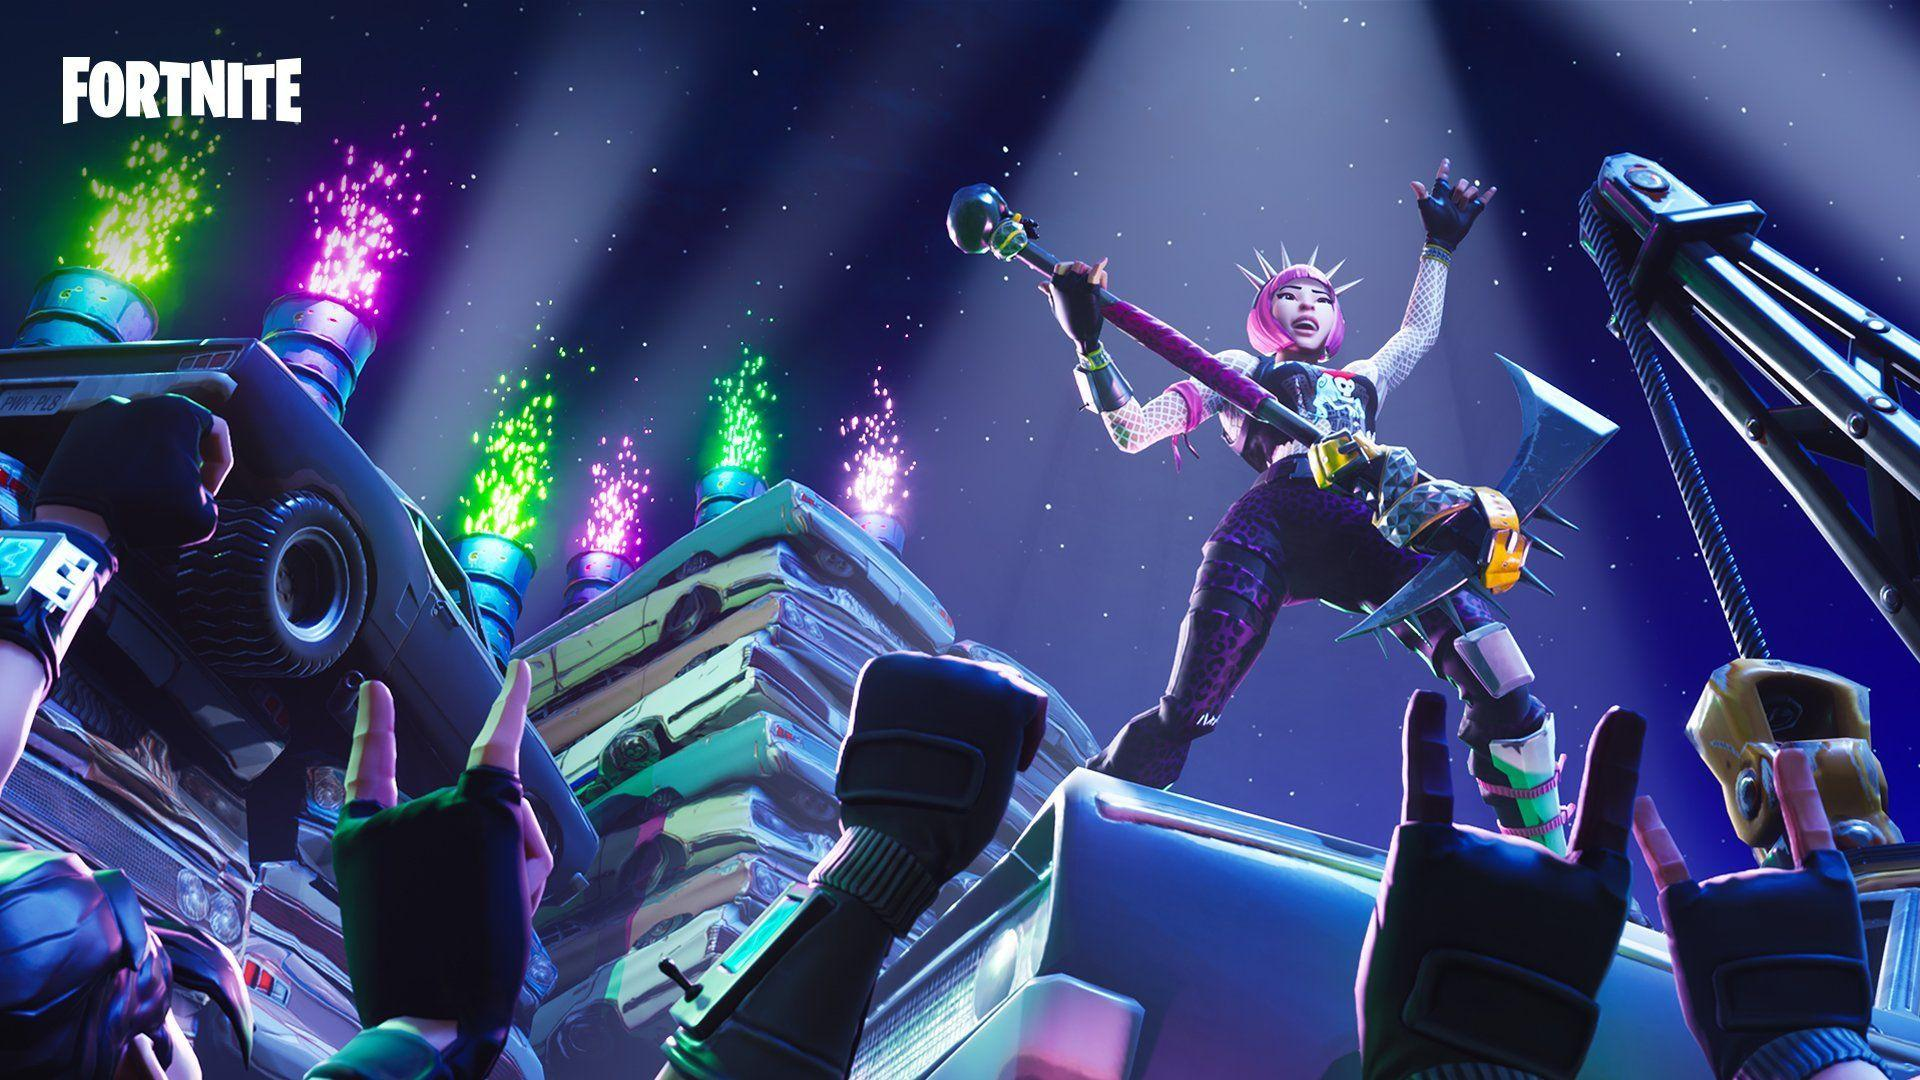 42 Best Free Fortnite Skin Wallpapers - WallpaperAccess